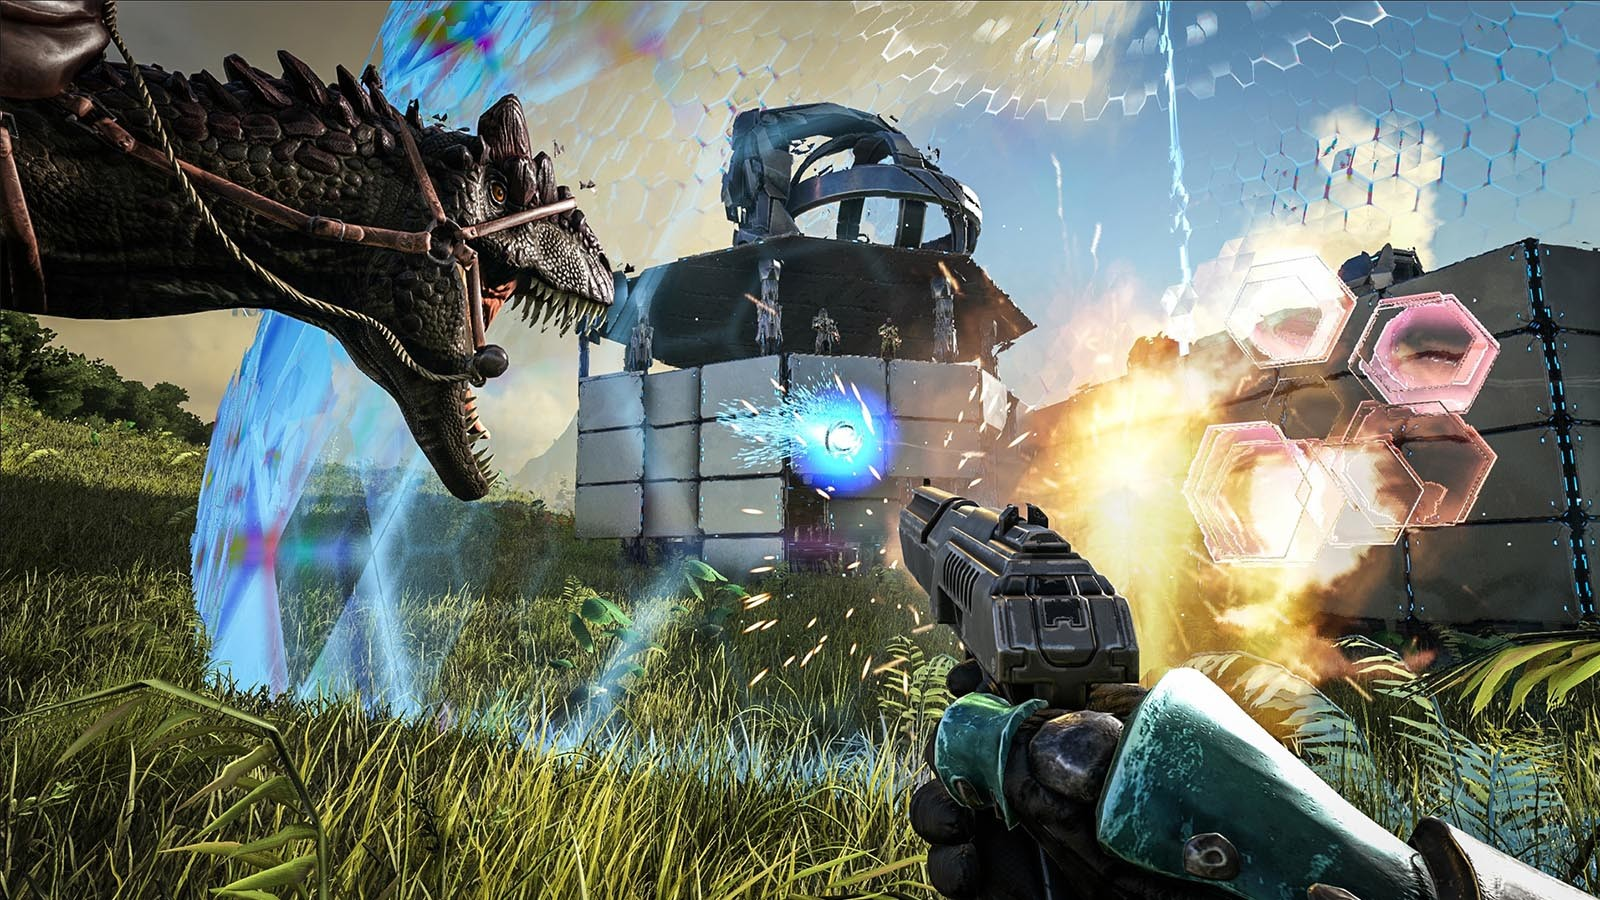 ARK: Survival Evolved [Steam CD Key] for PC, Mac and Linux - Buy now